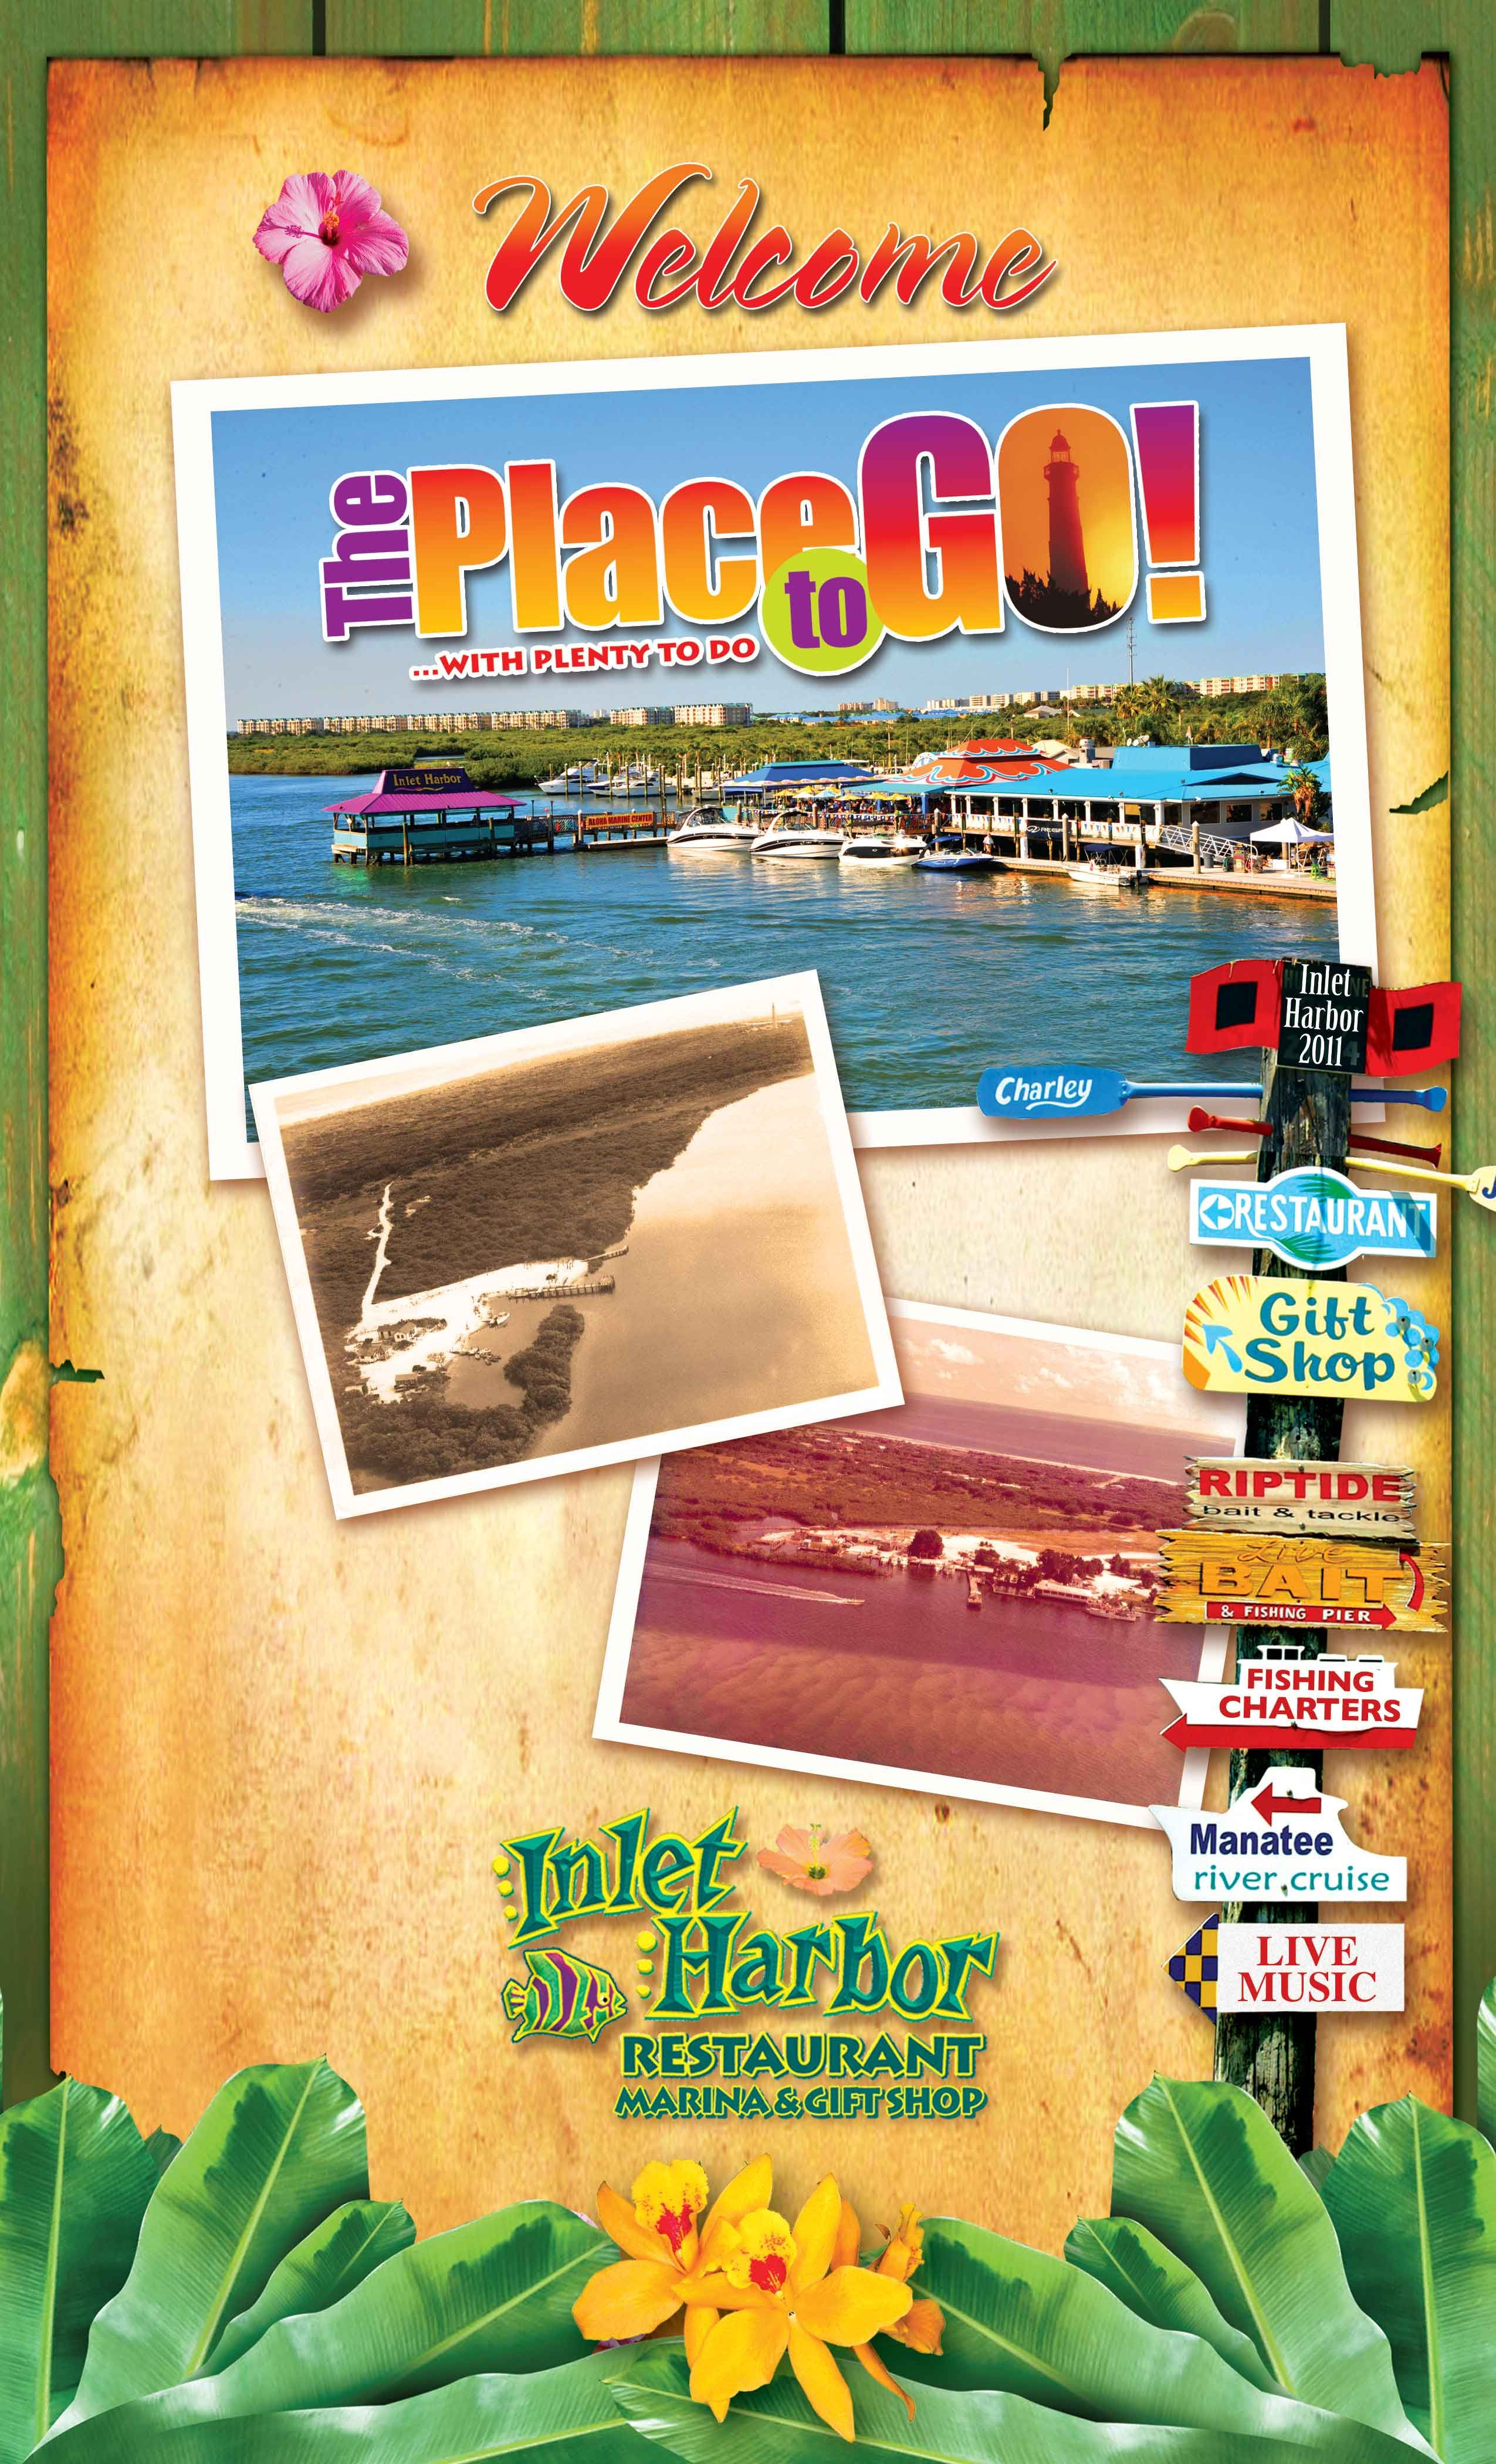 Inlet Harbor Is Daytona Beach S Place To Go With Plenty To Do Our Waterfront Restaurant Features Daytona Beach Restaurants Dream Vacation Spots Beach Place